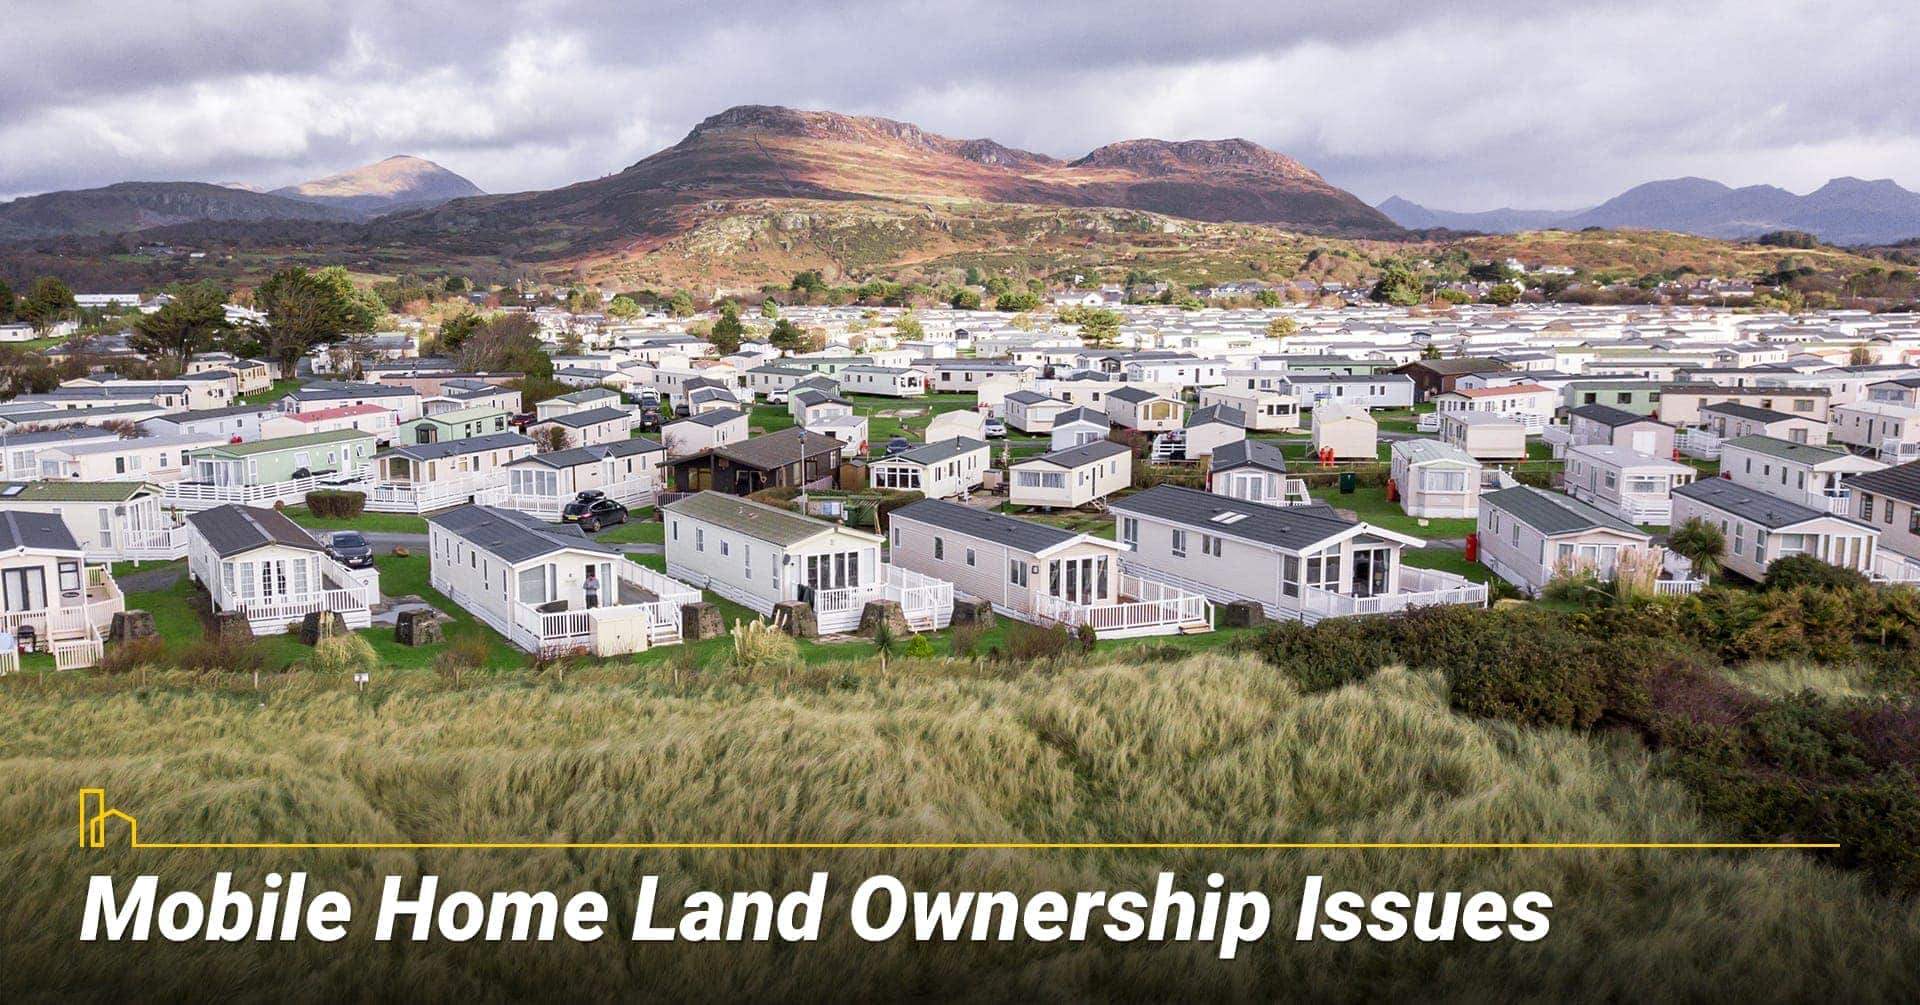 Mobile Home Land Ownership Issues, owning land on mobile home